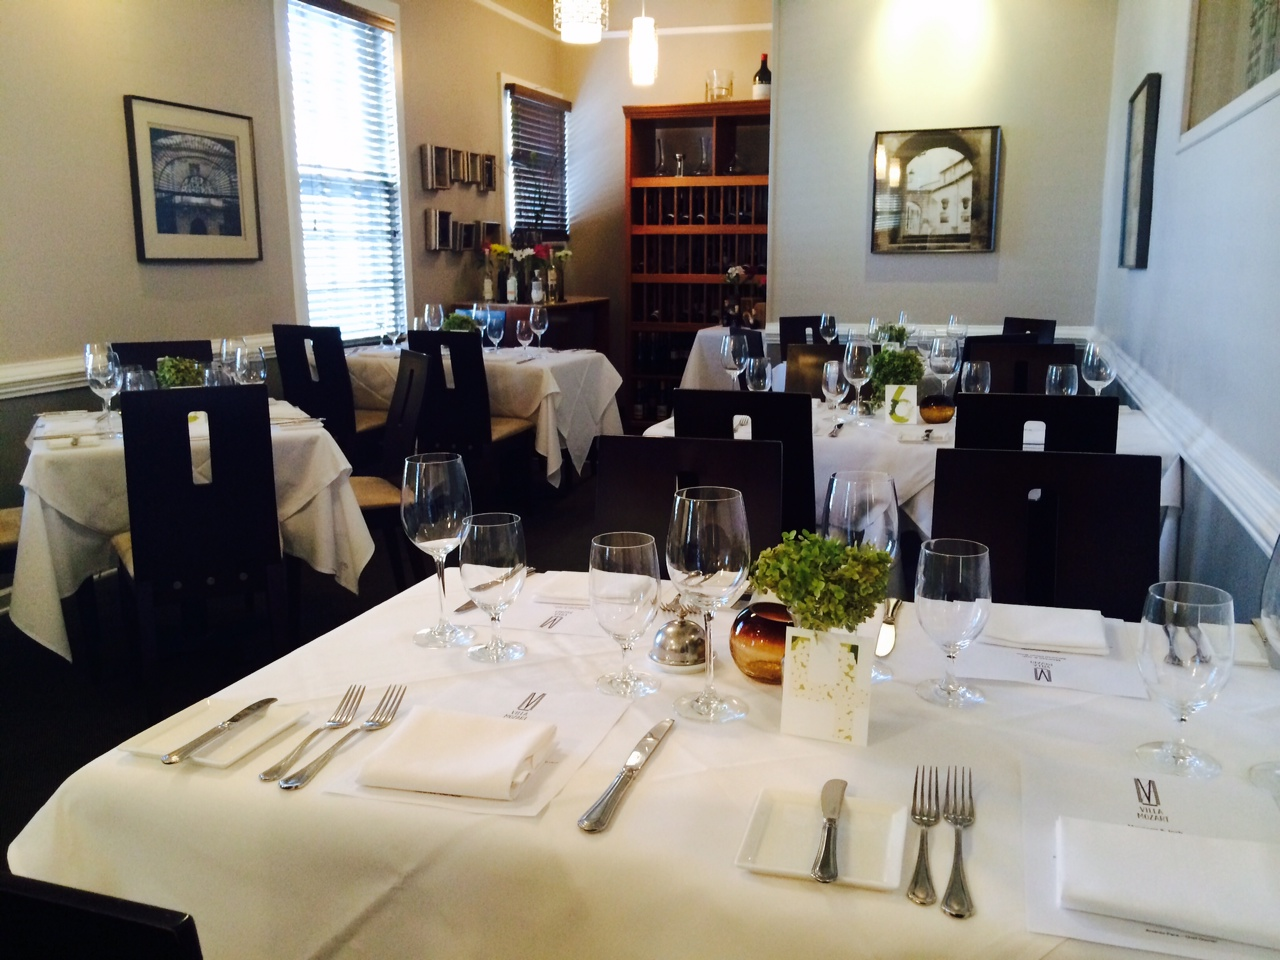 Villa Mozart Restaurant event space in Washington DC, Maryland, Virginia, DC Area